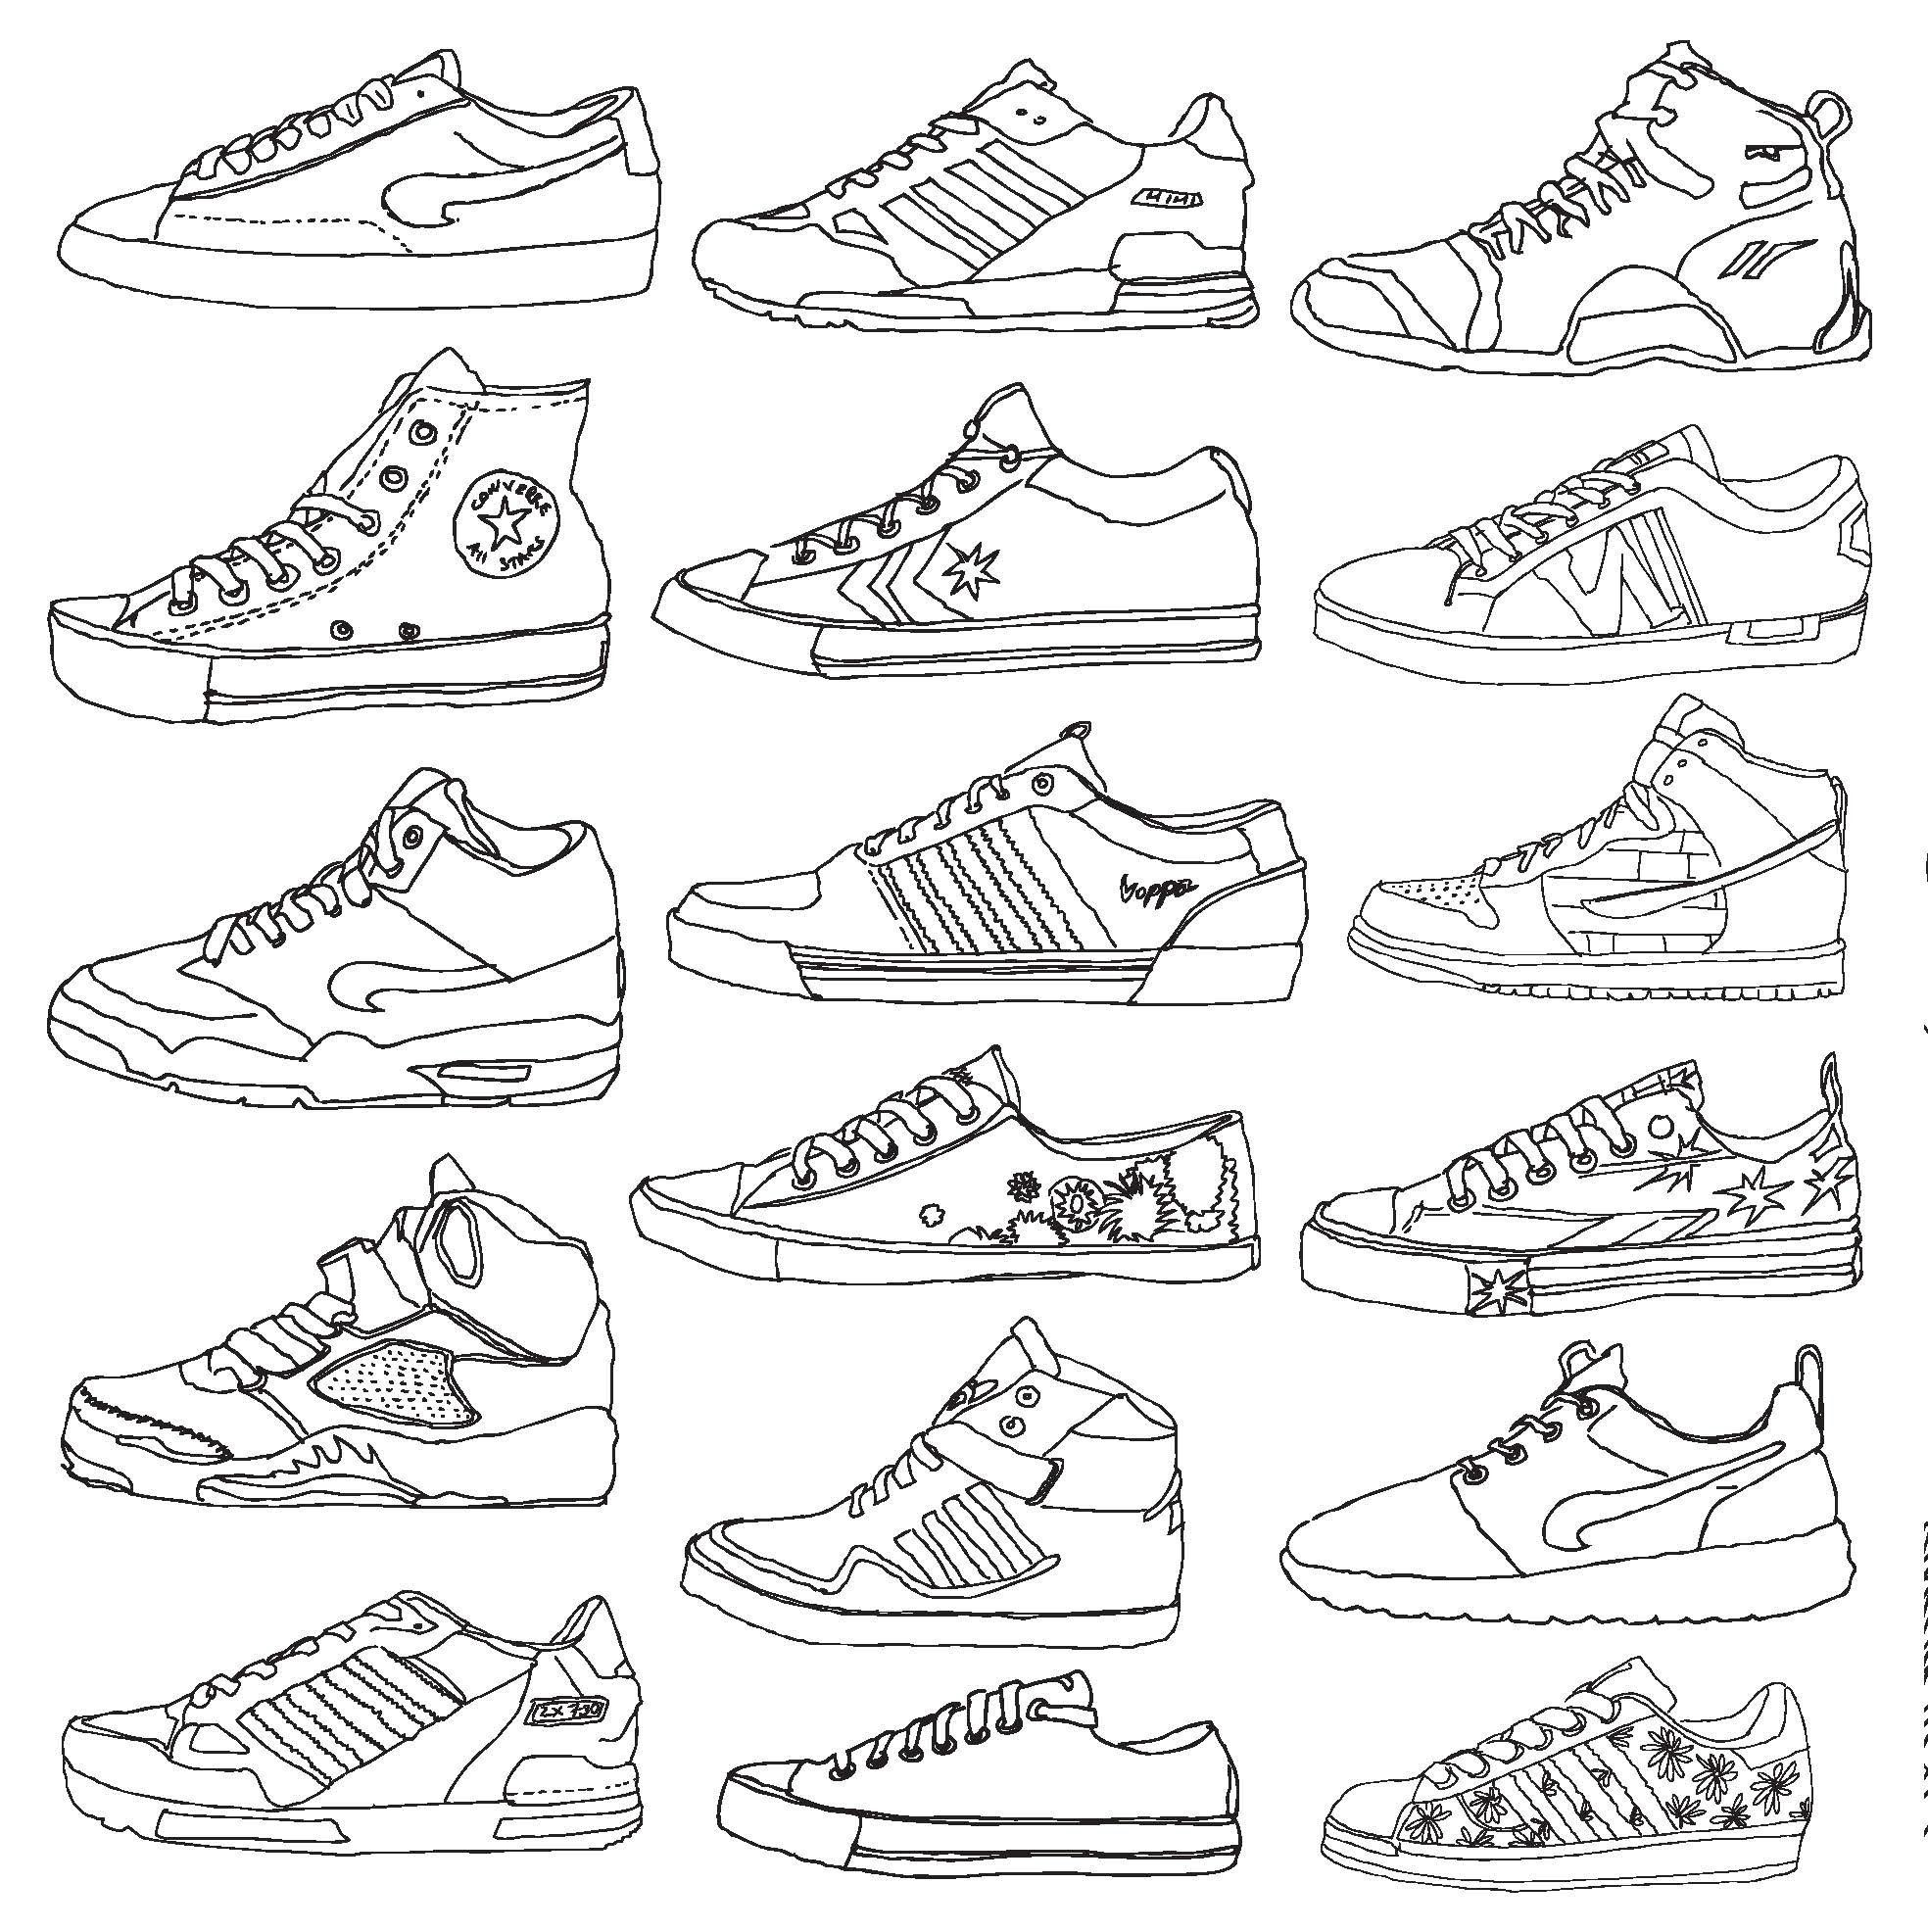 Coloring book pages of shoes - This Is Cool I Would Love To Color This It S Almost Like Making Your Own Style Shoes New York Coloring Pages